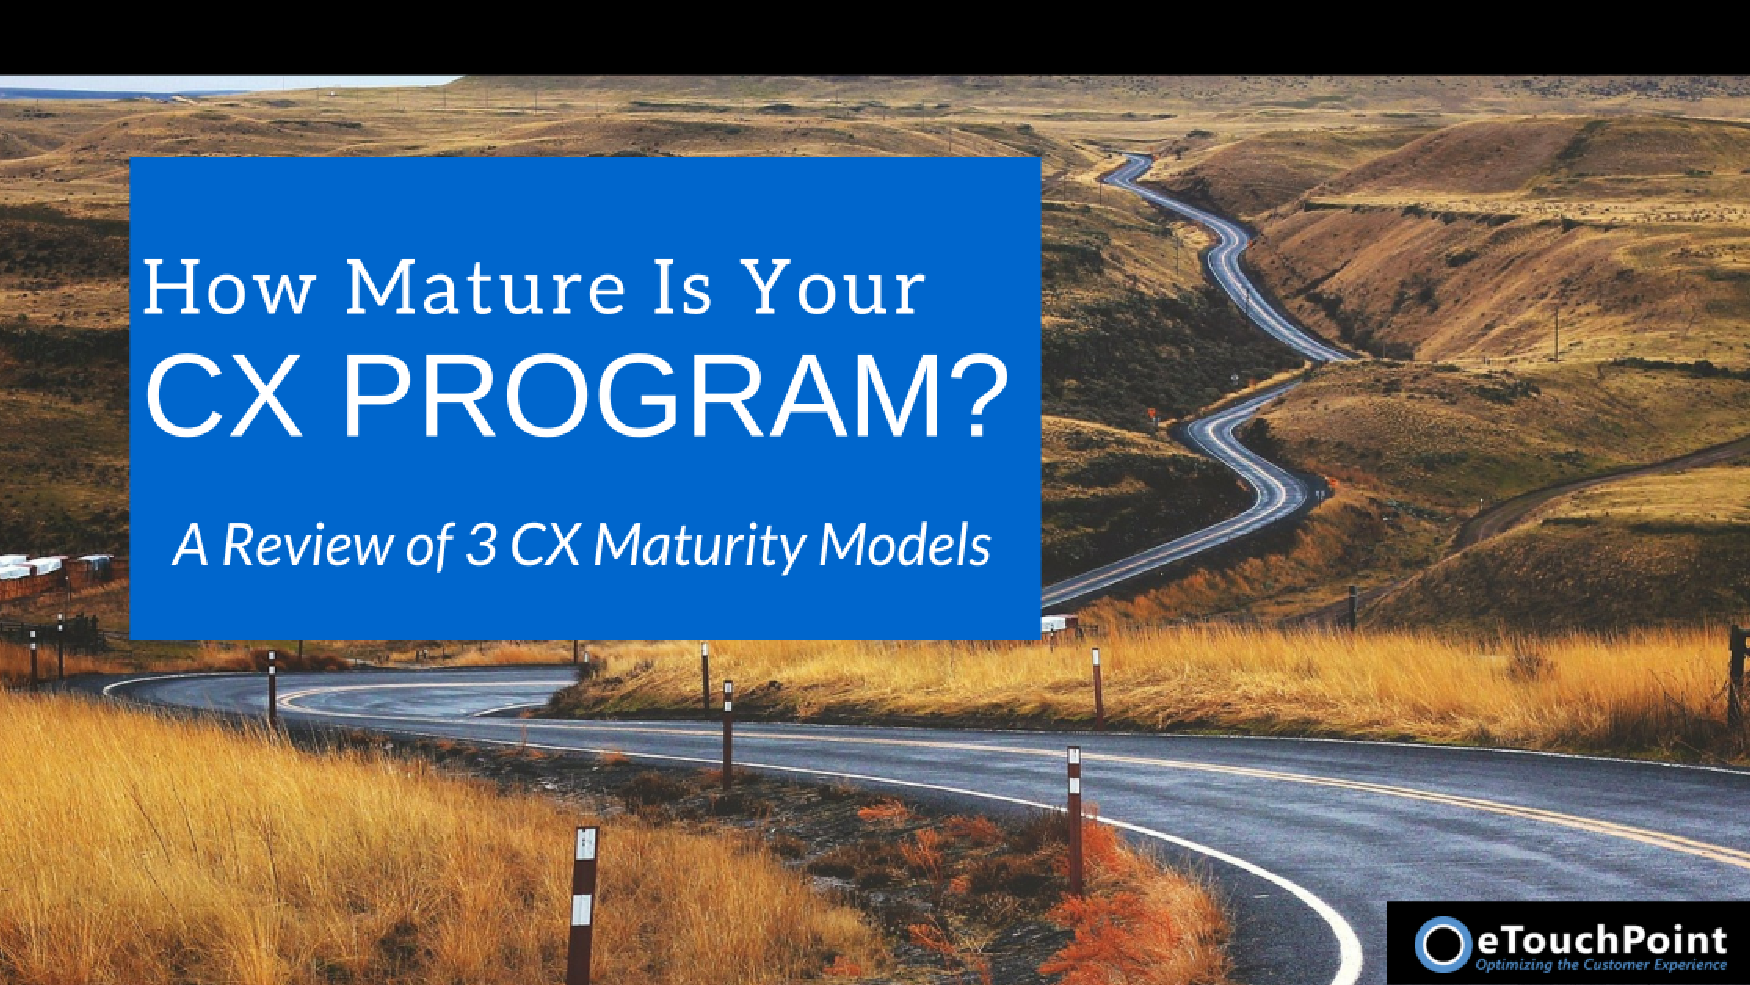 How Mature Is Your CX Program? A Review of 3 CX Maturity Models